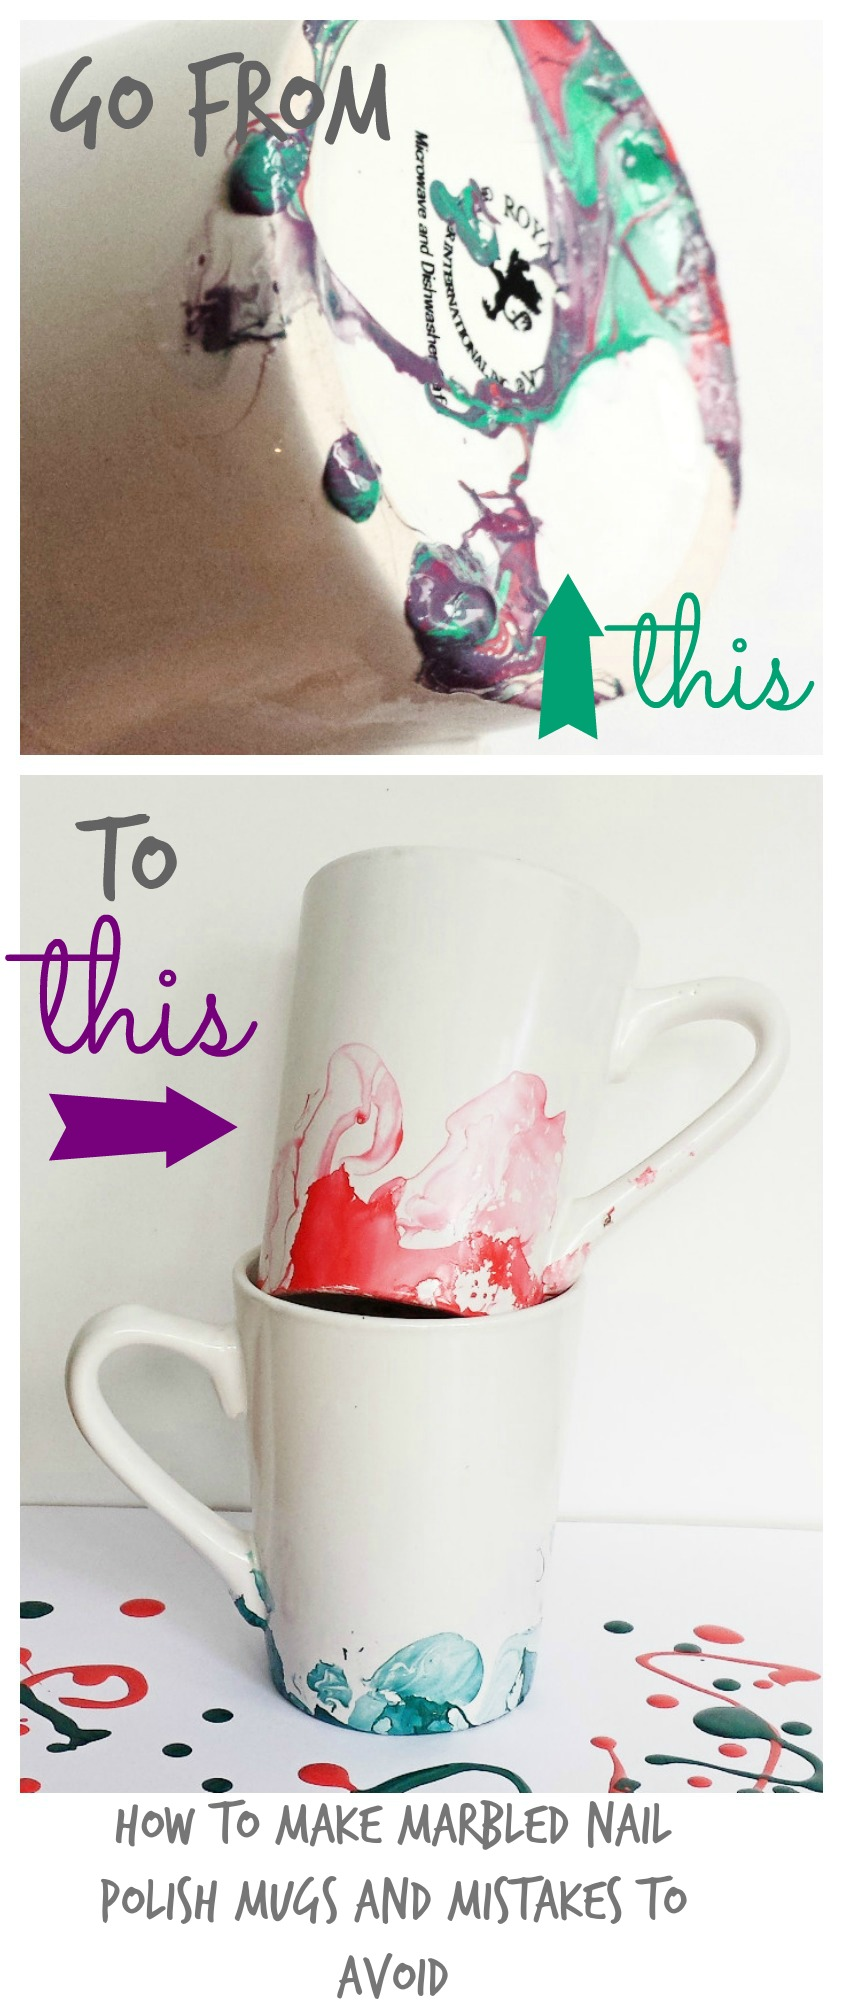 Marbled nail polish mugs 6 things i wish i had known before marbled or watercolor nail polish mugs solutioingenieria Image collections